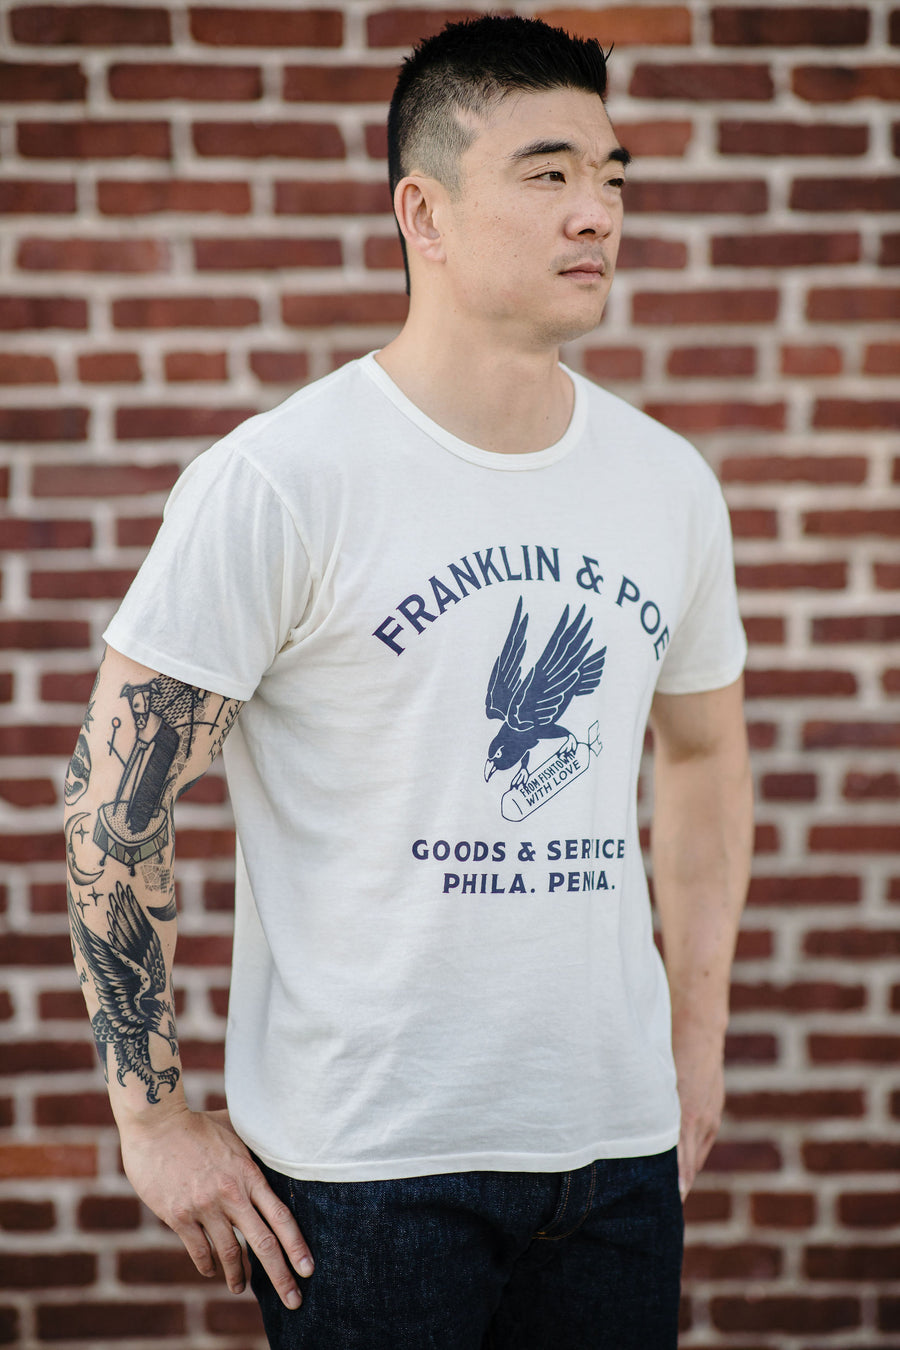 Franklin & Poe Shop Tee - From Fishtown With Love